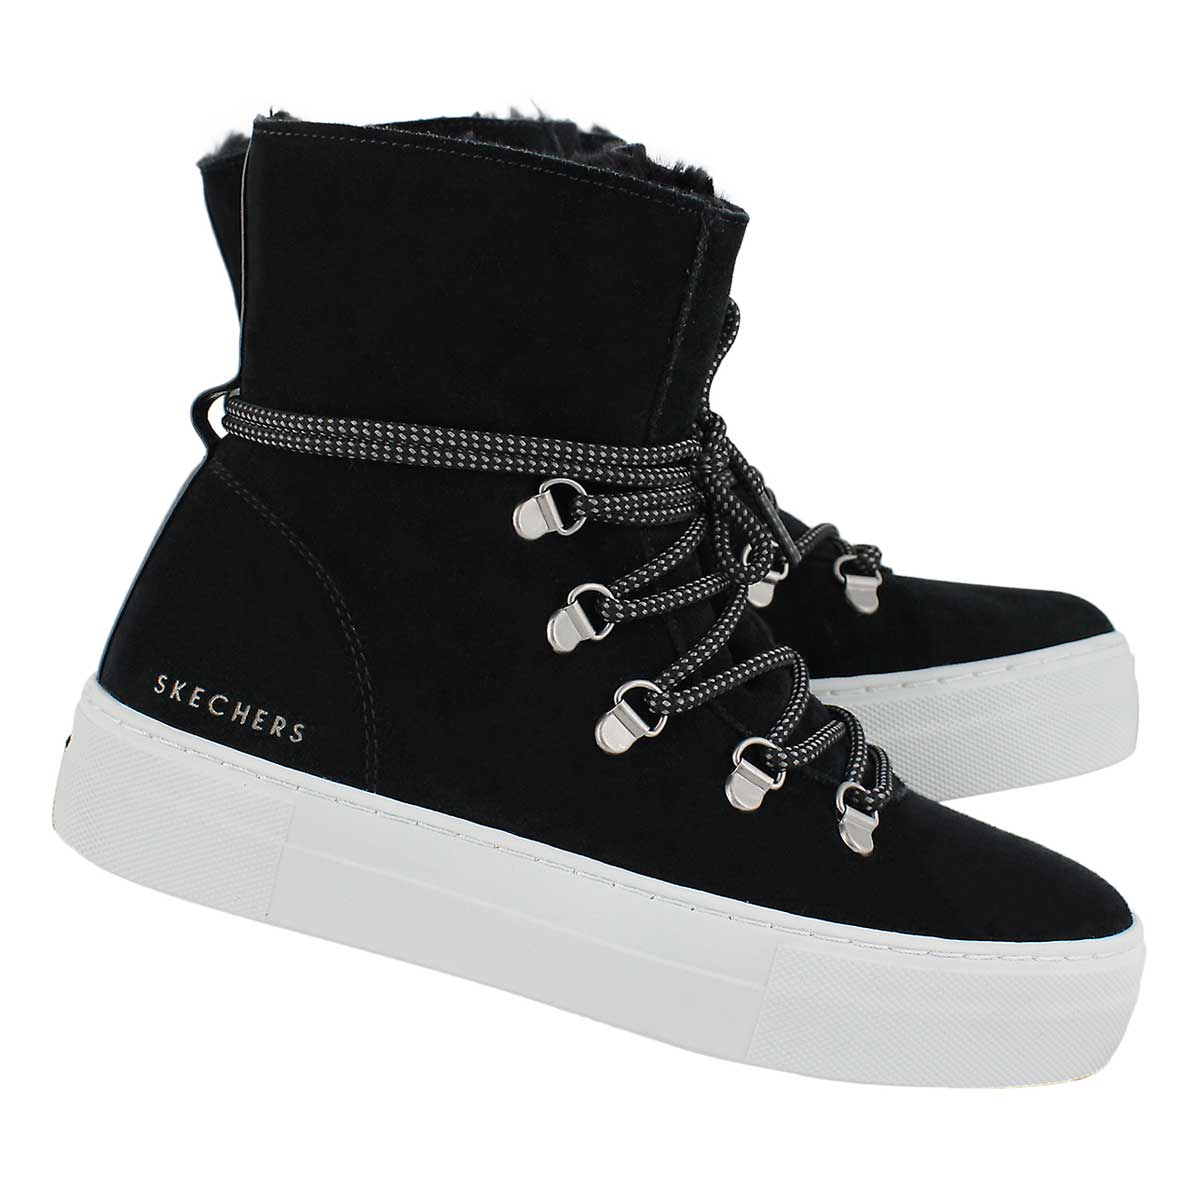 Lds Alba blk lace up tall snkr boot